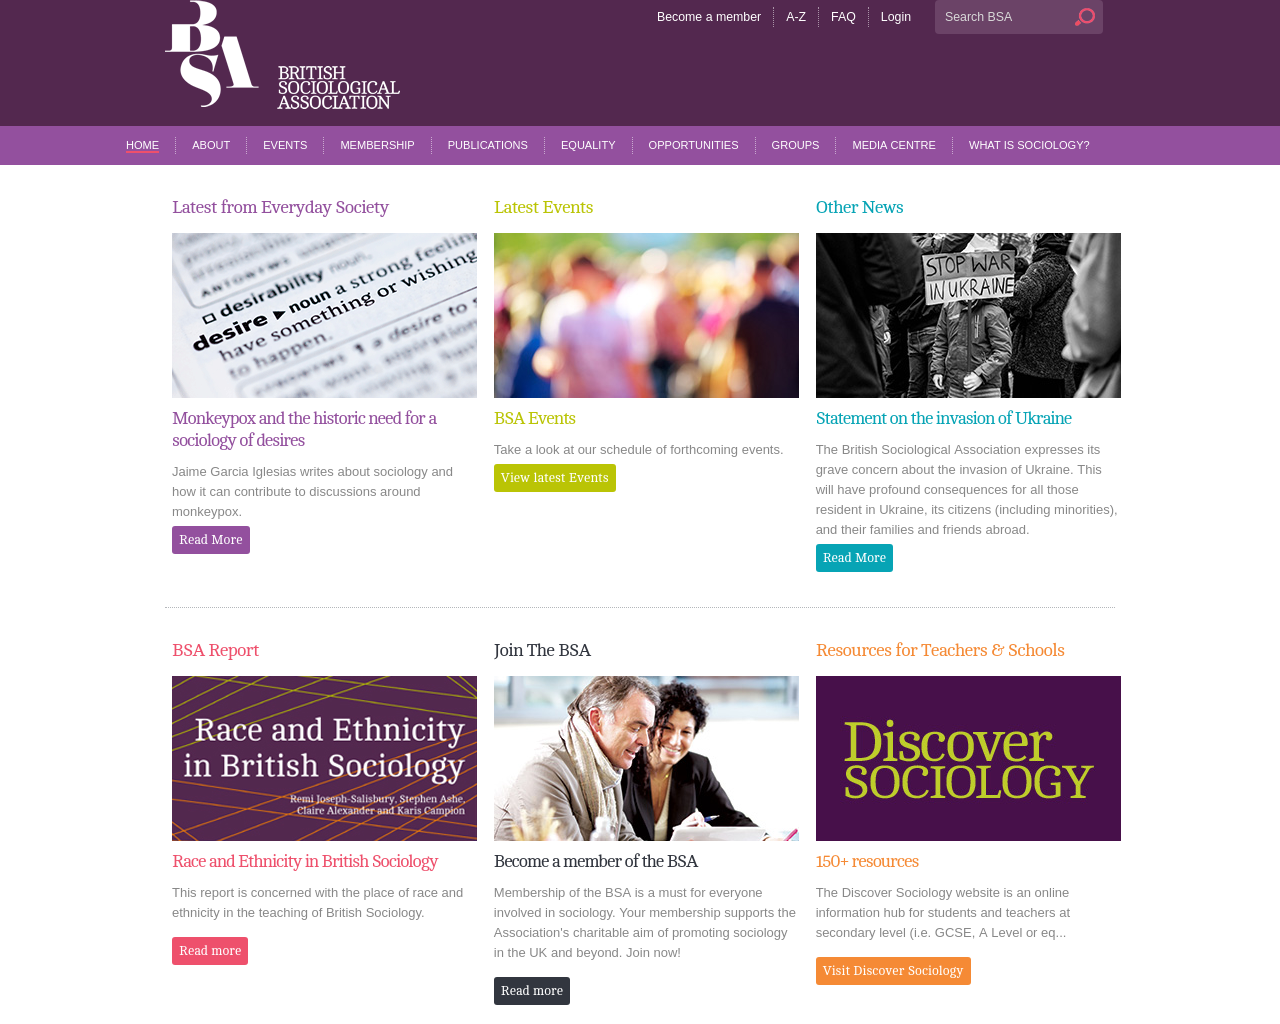 British Sociological Association